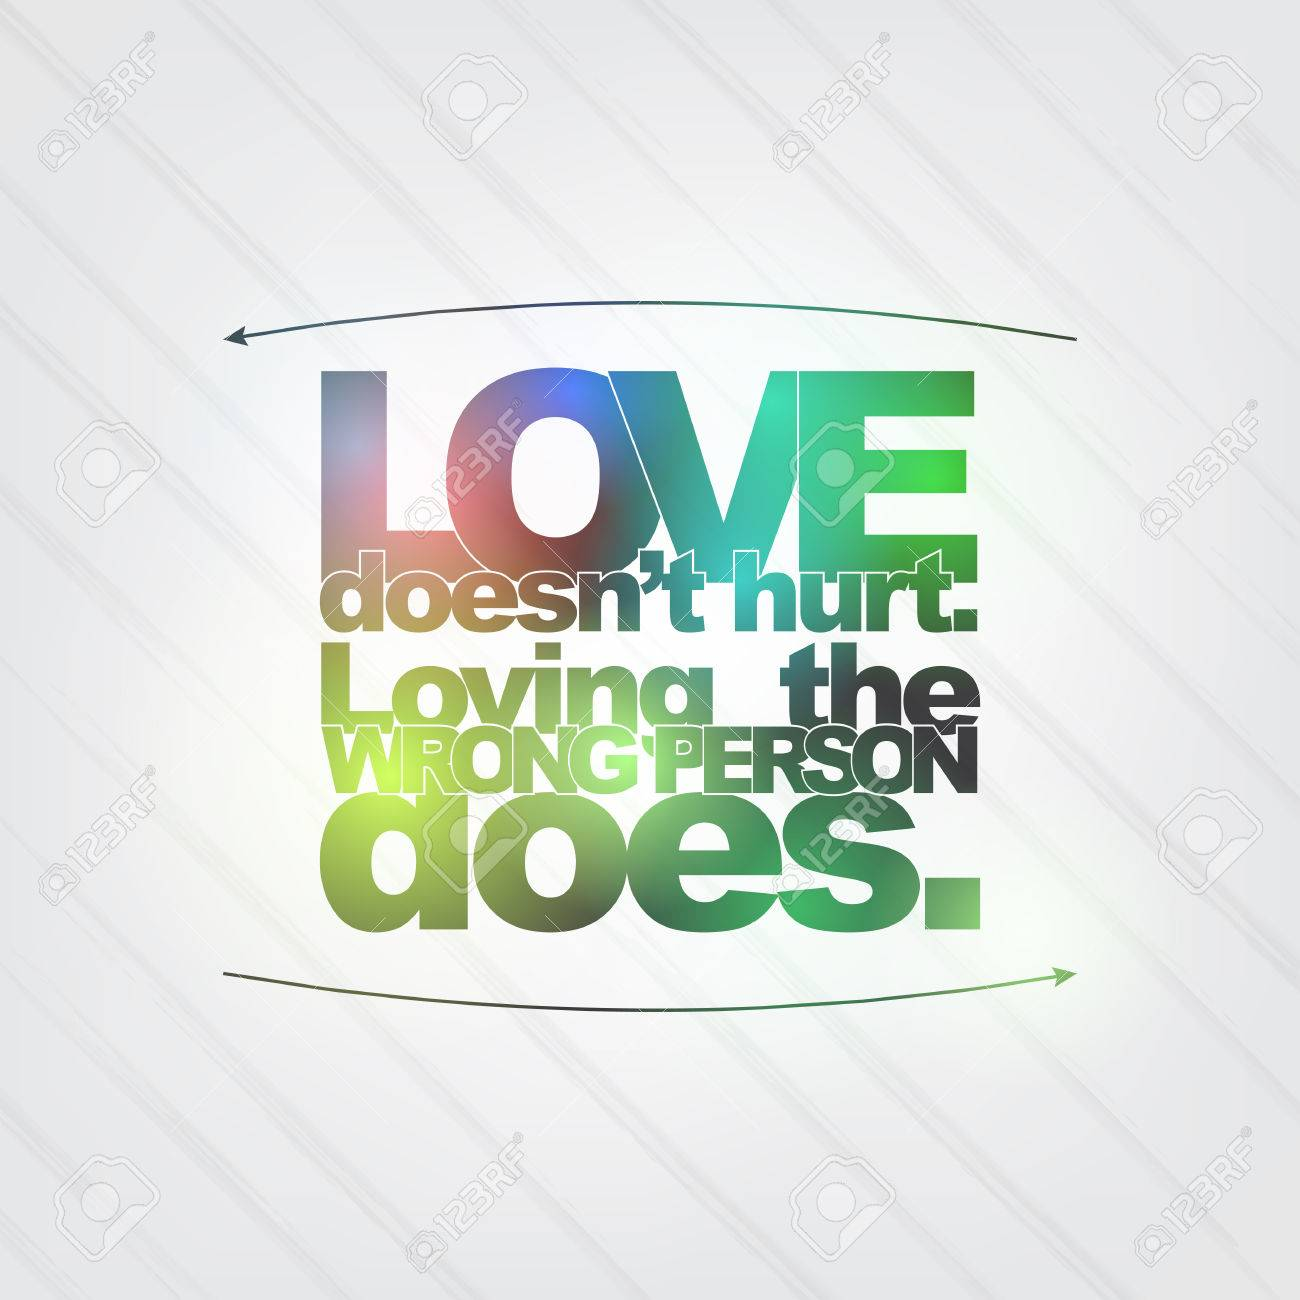 Love Doesnu0027t Hurt. Loving The Wrong Person Does. Motivational Background  Stock Vector